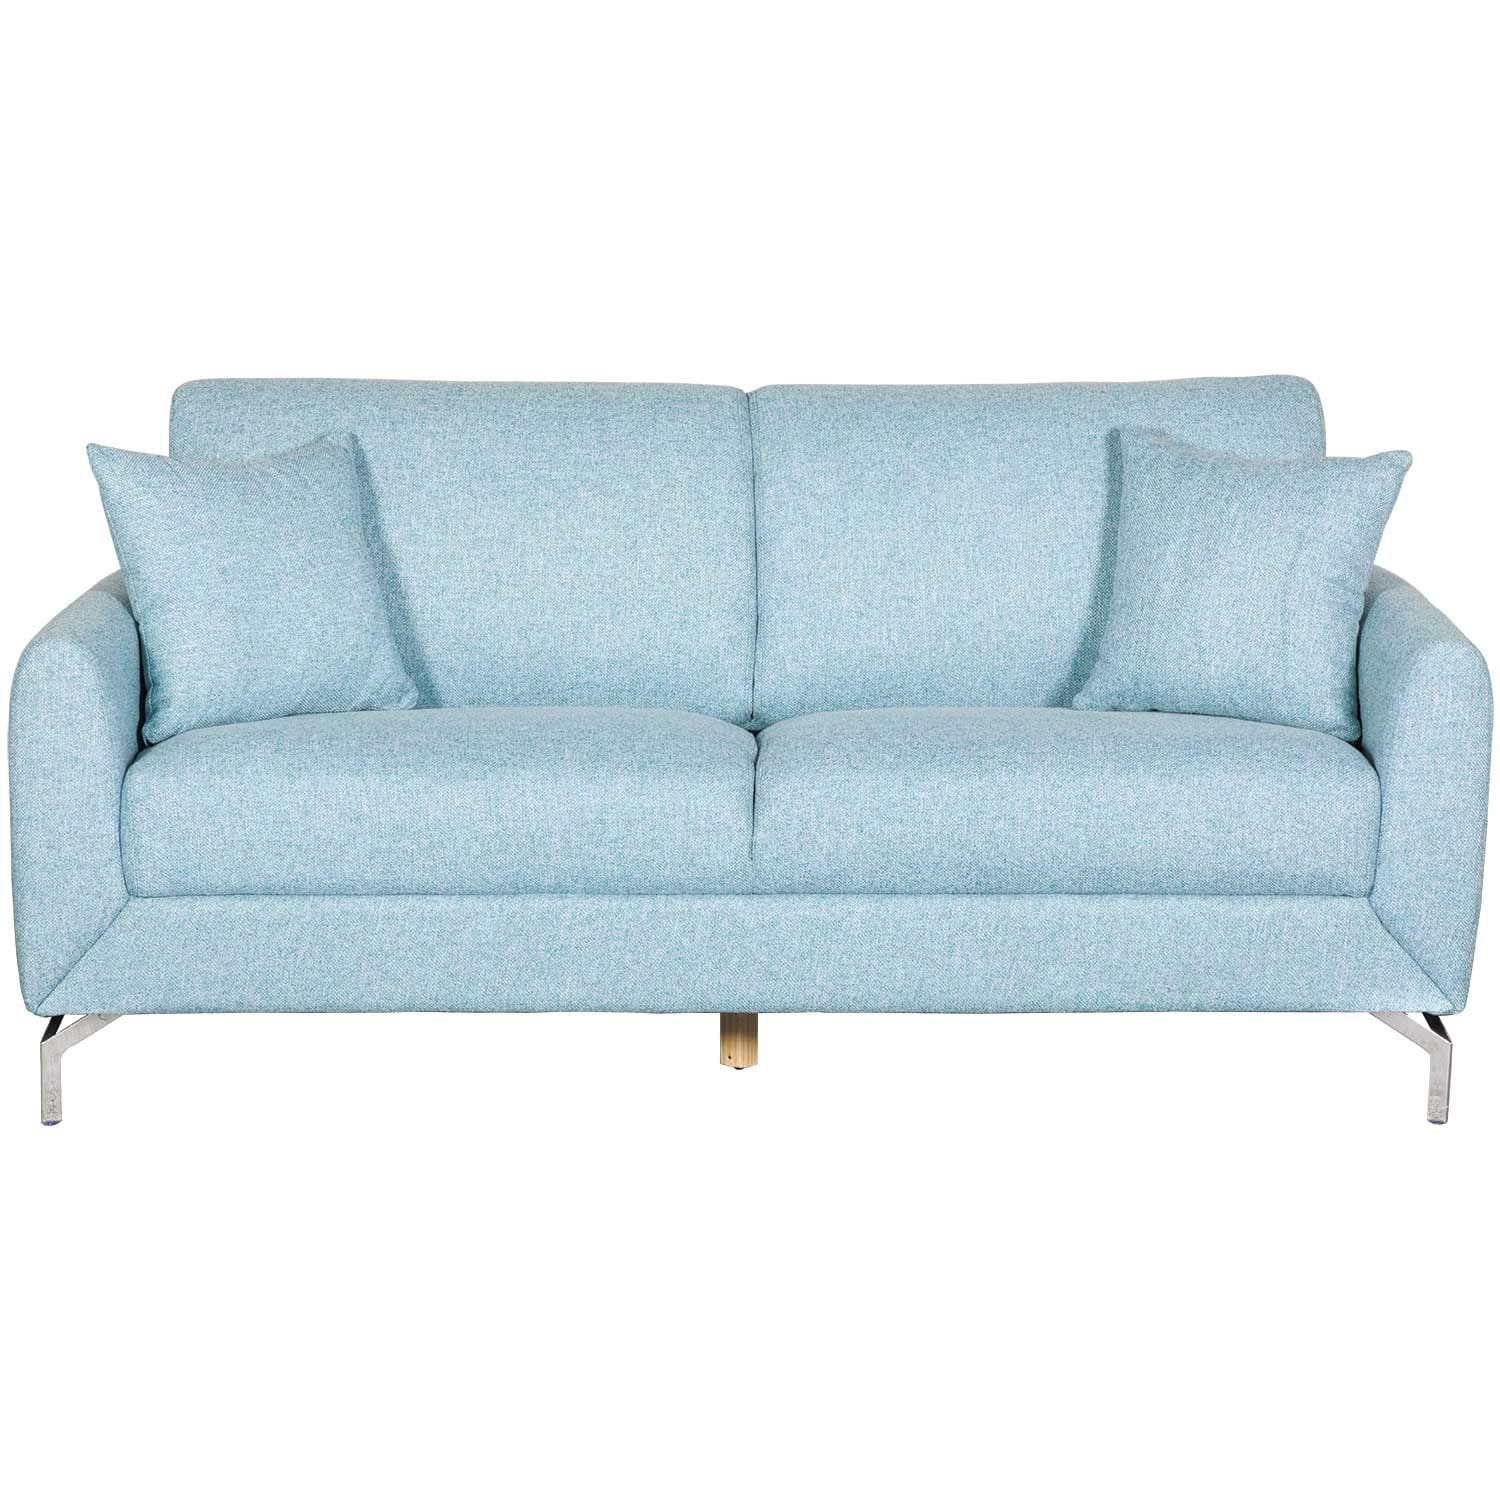 Mia Blue Sofa